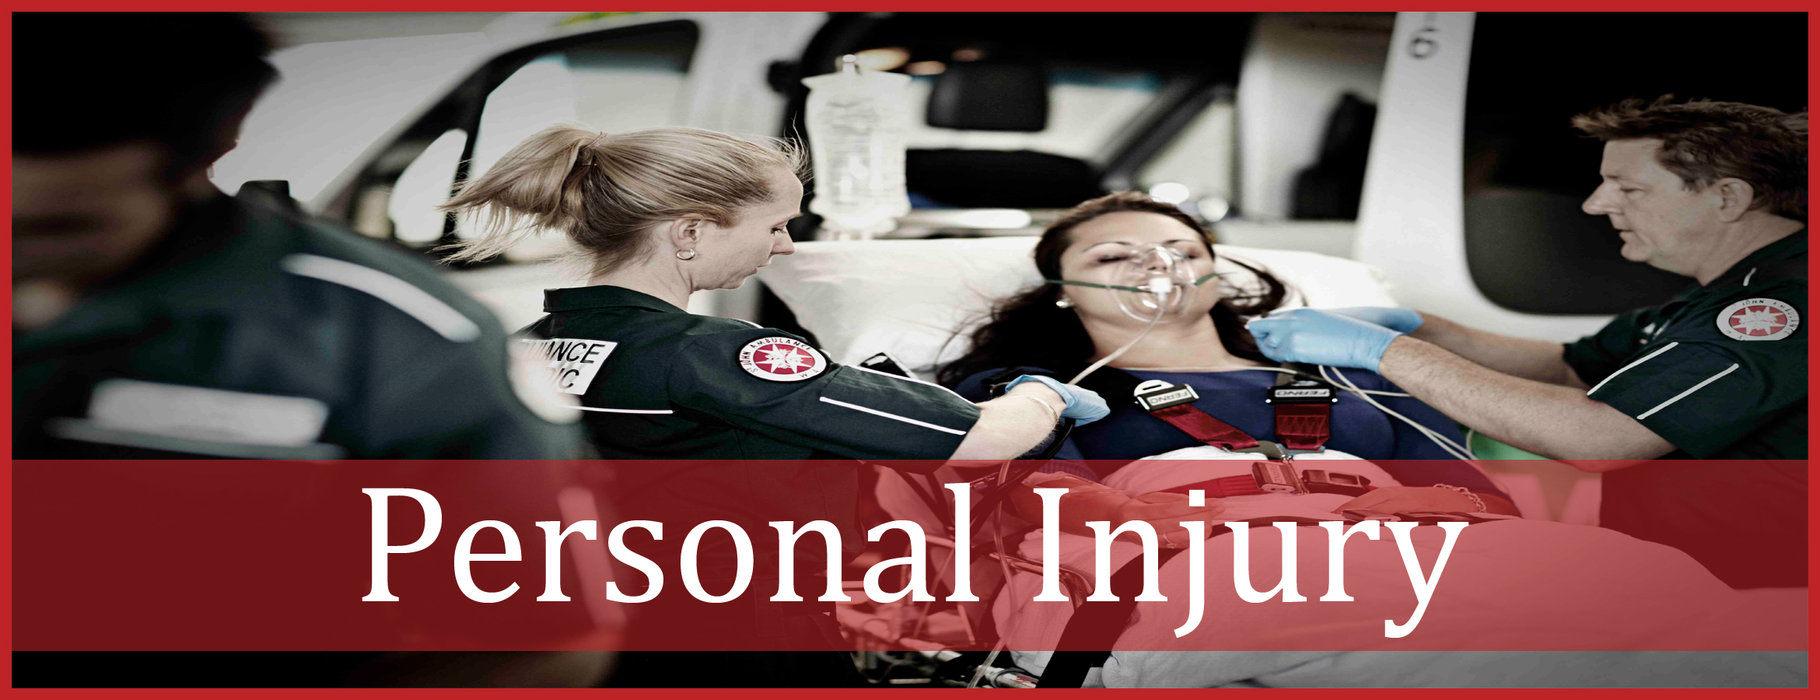 rsz_personal-injury-atorney